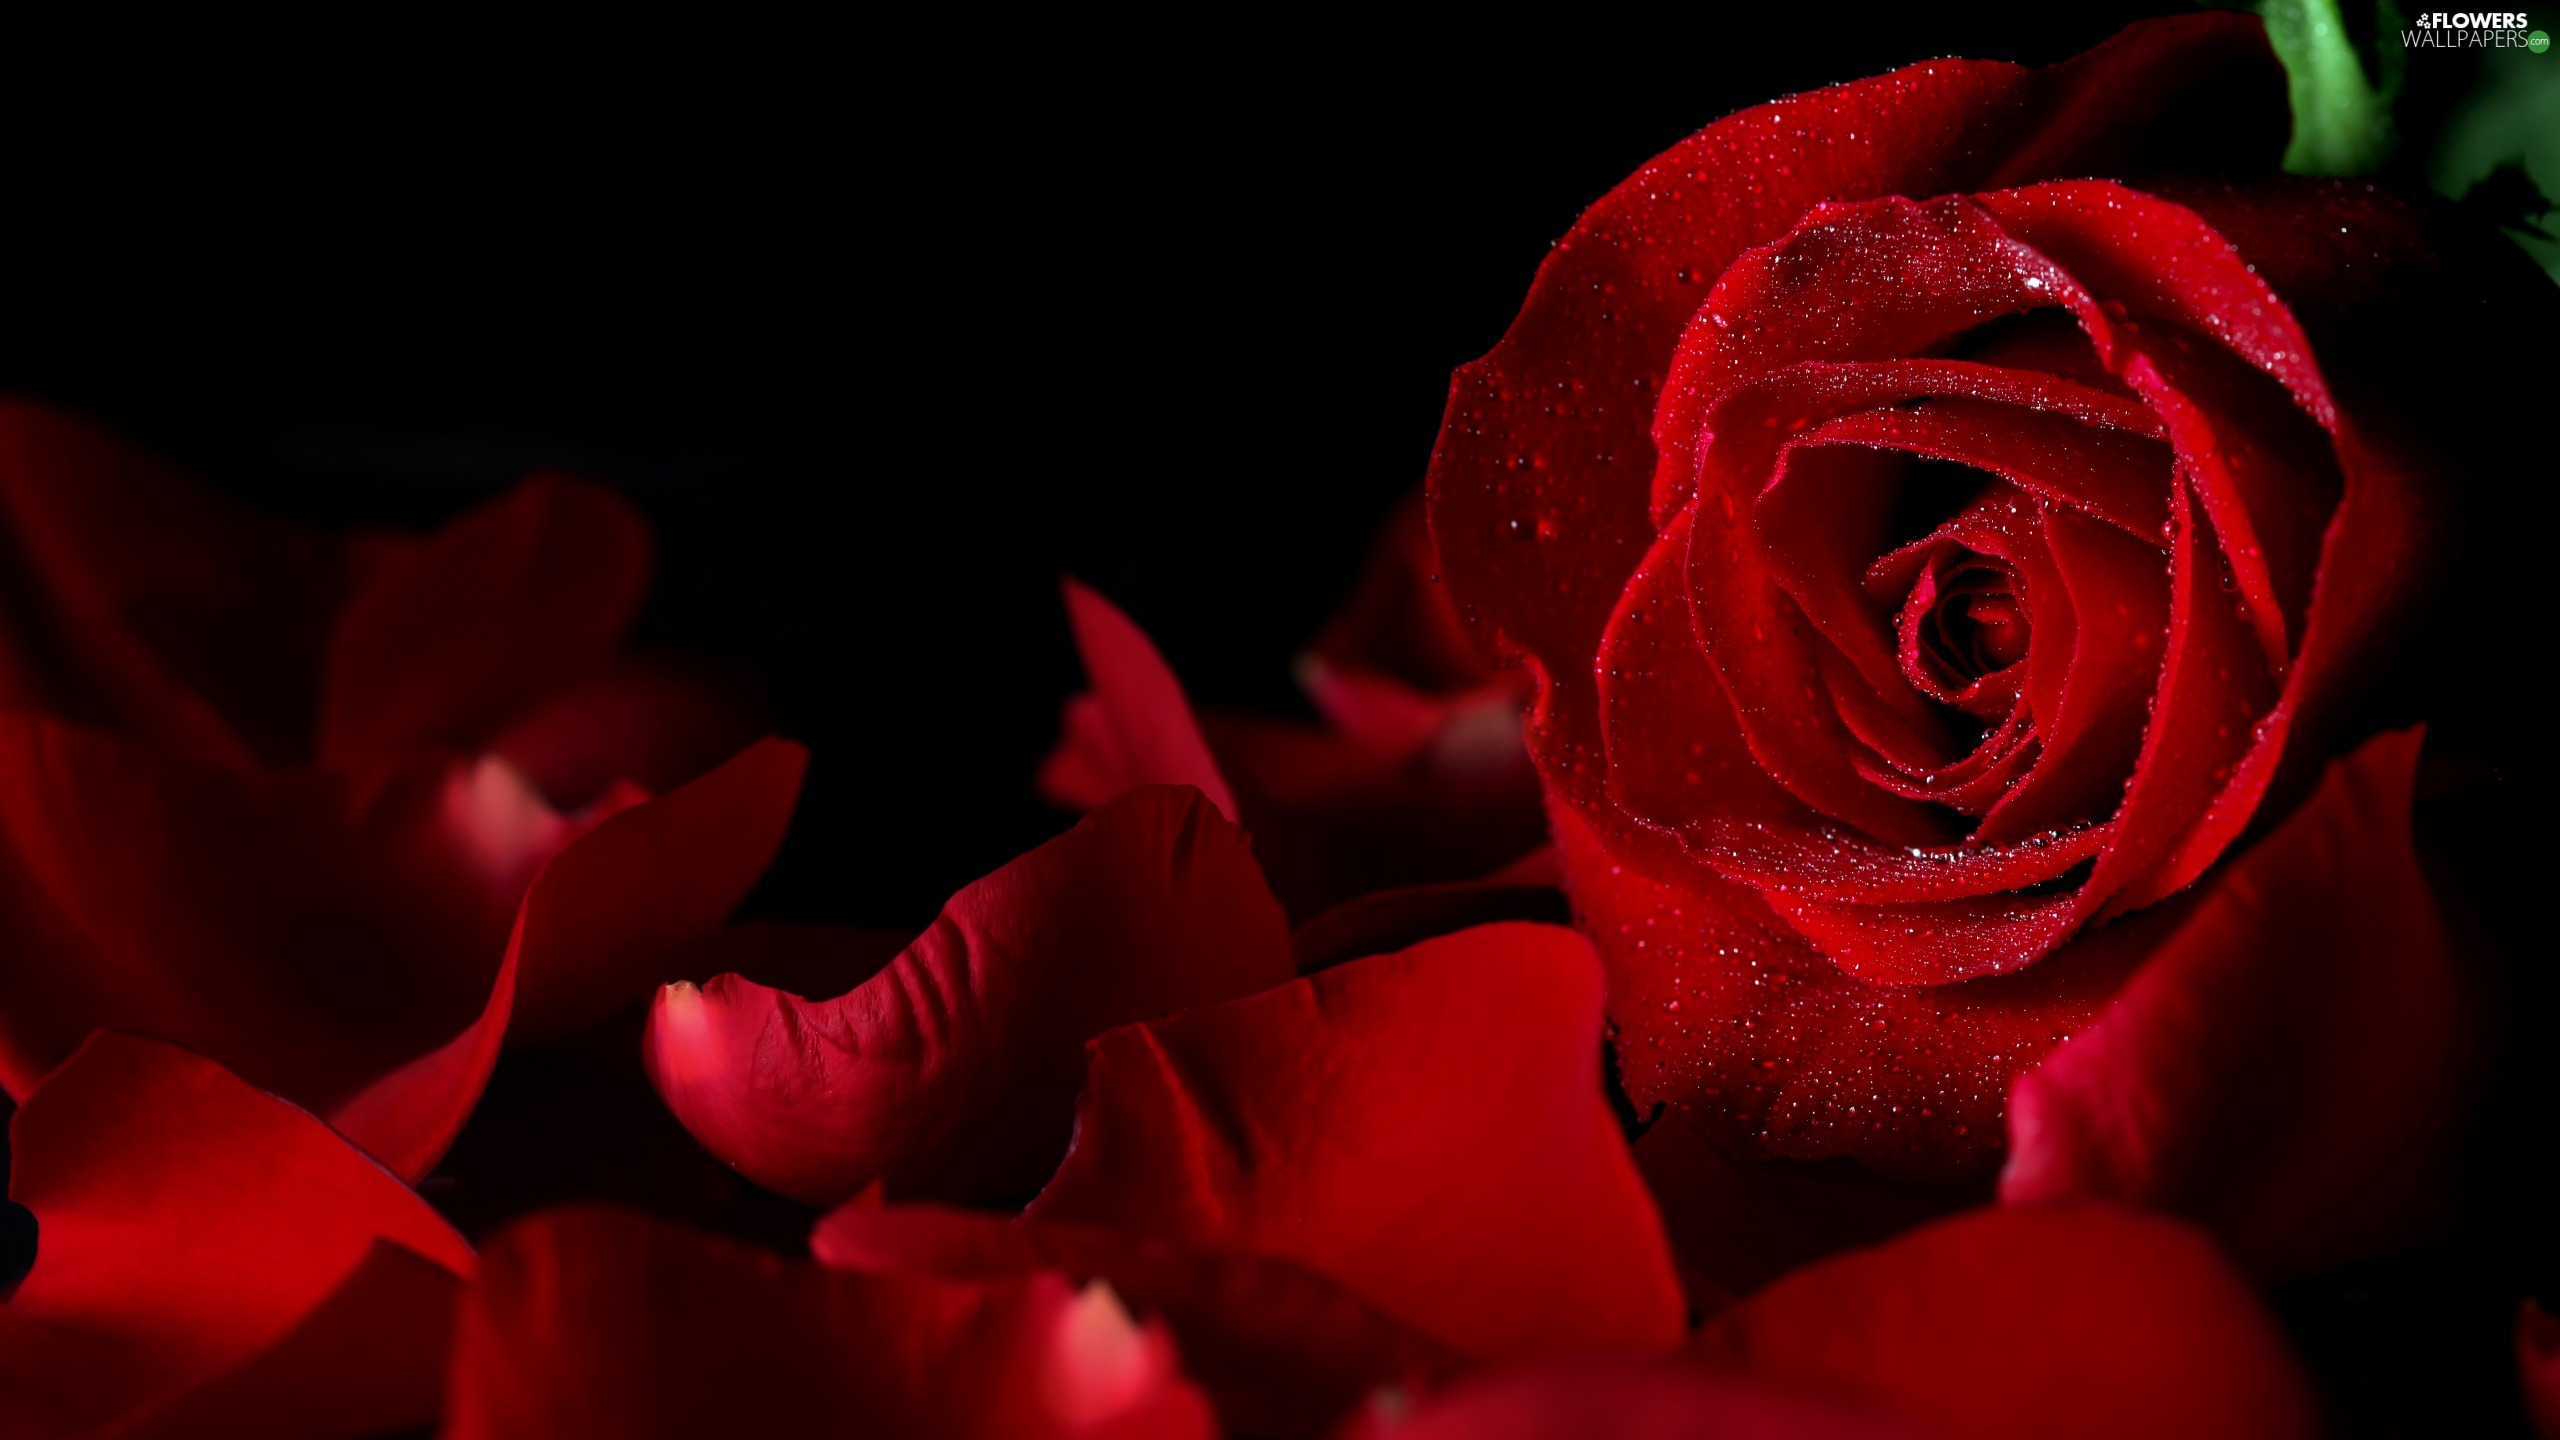 Black, flakes, red hot, background, rose